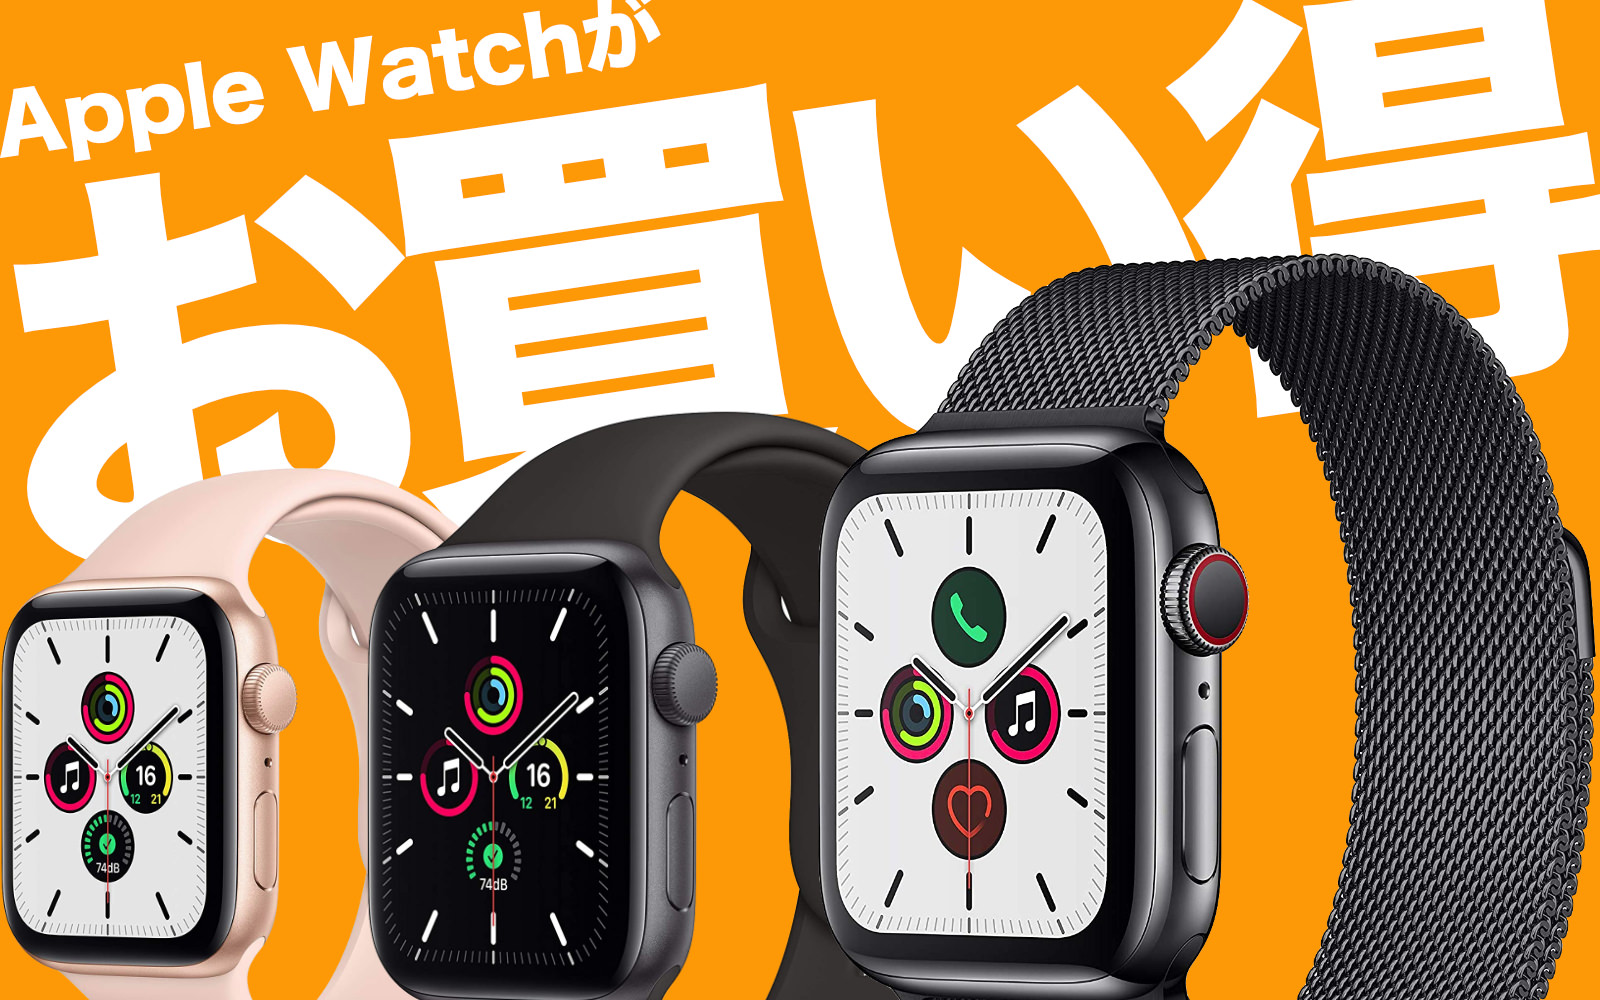 Apple Watch Is on sale at amazon